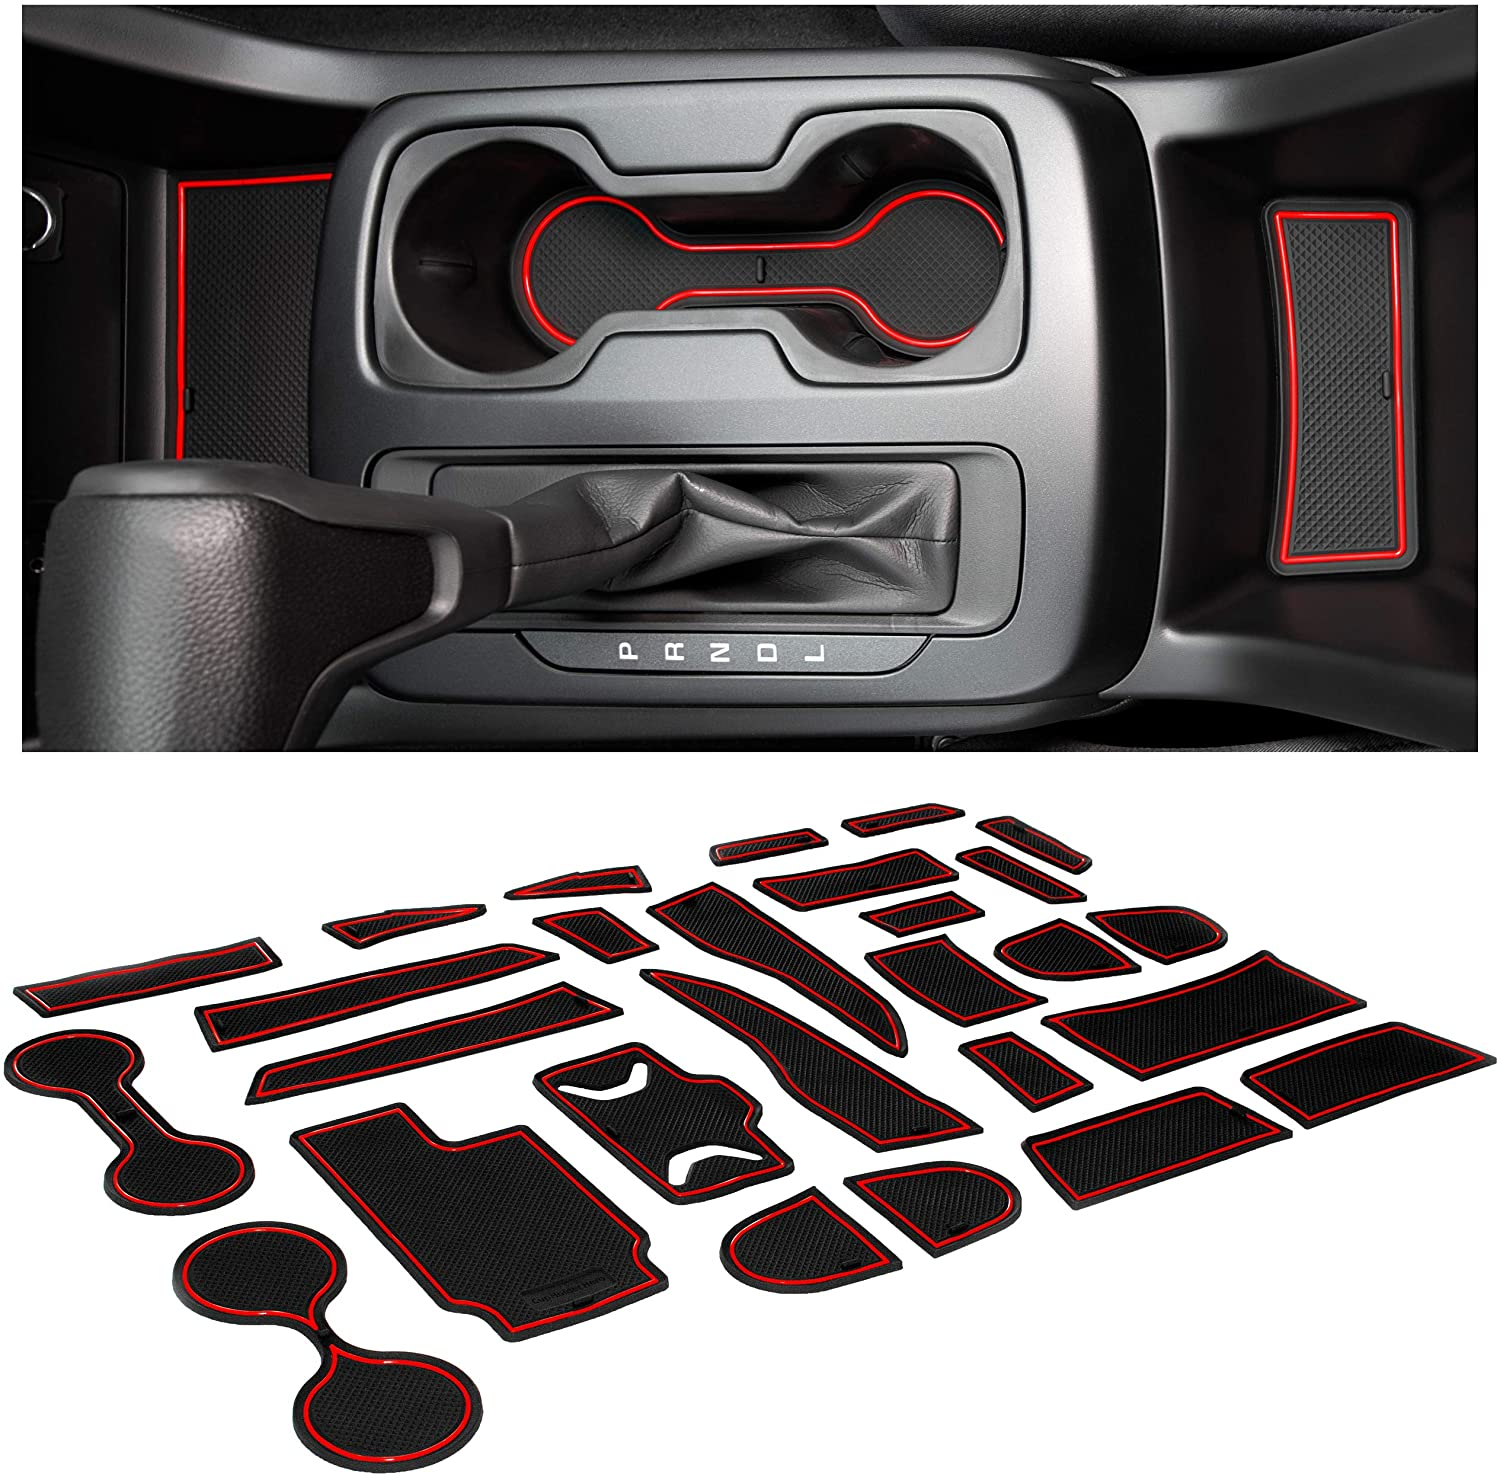 Practical Console Cup Holder for GMC Canyon 2004-2012 Bench Seat ...